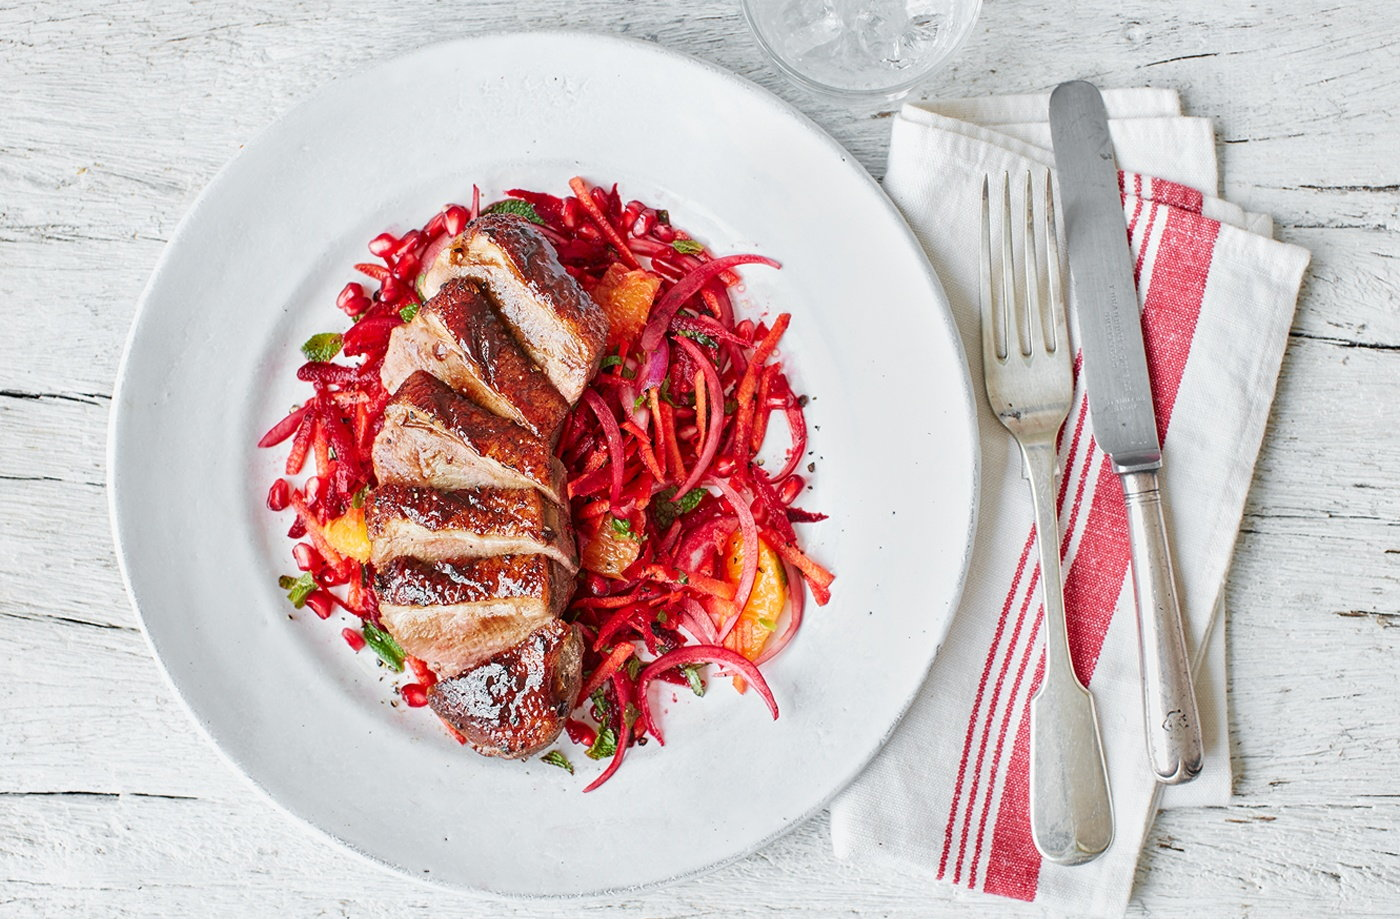 Spiced duck breasts with beetroot, orange and pomegranate slaw recipe